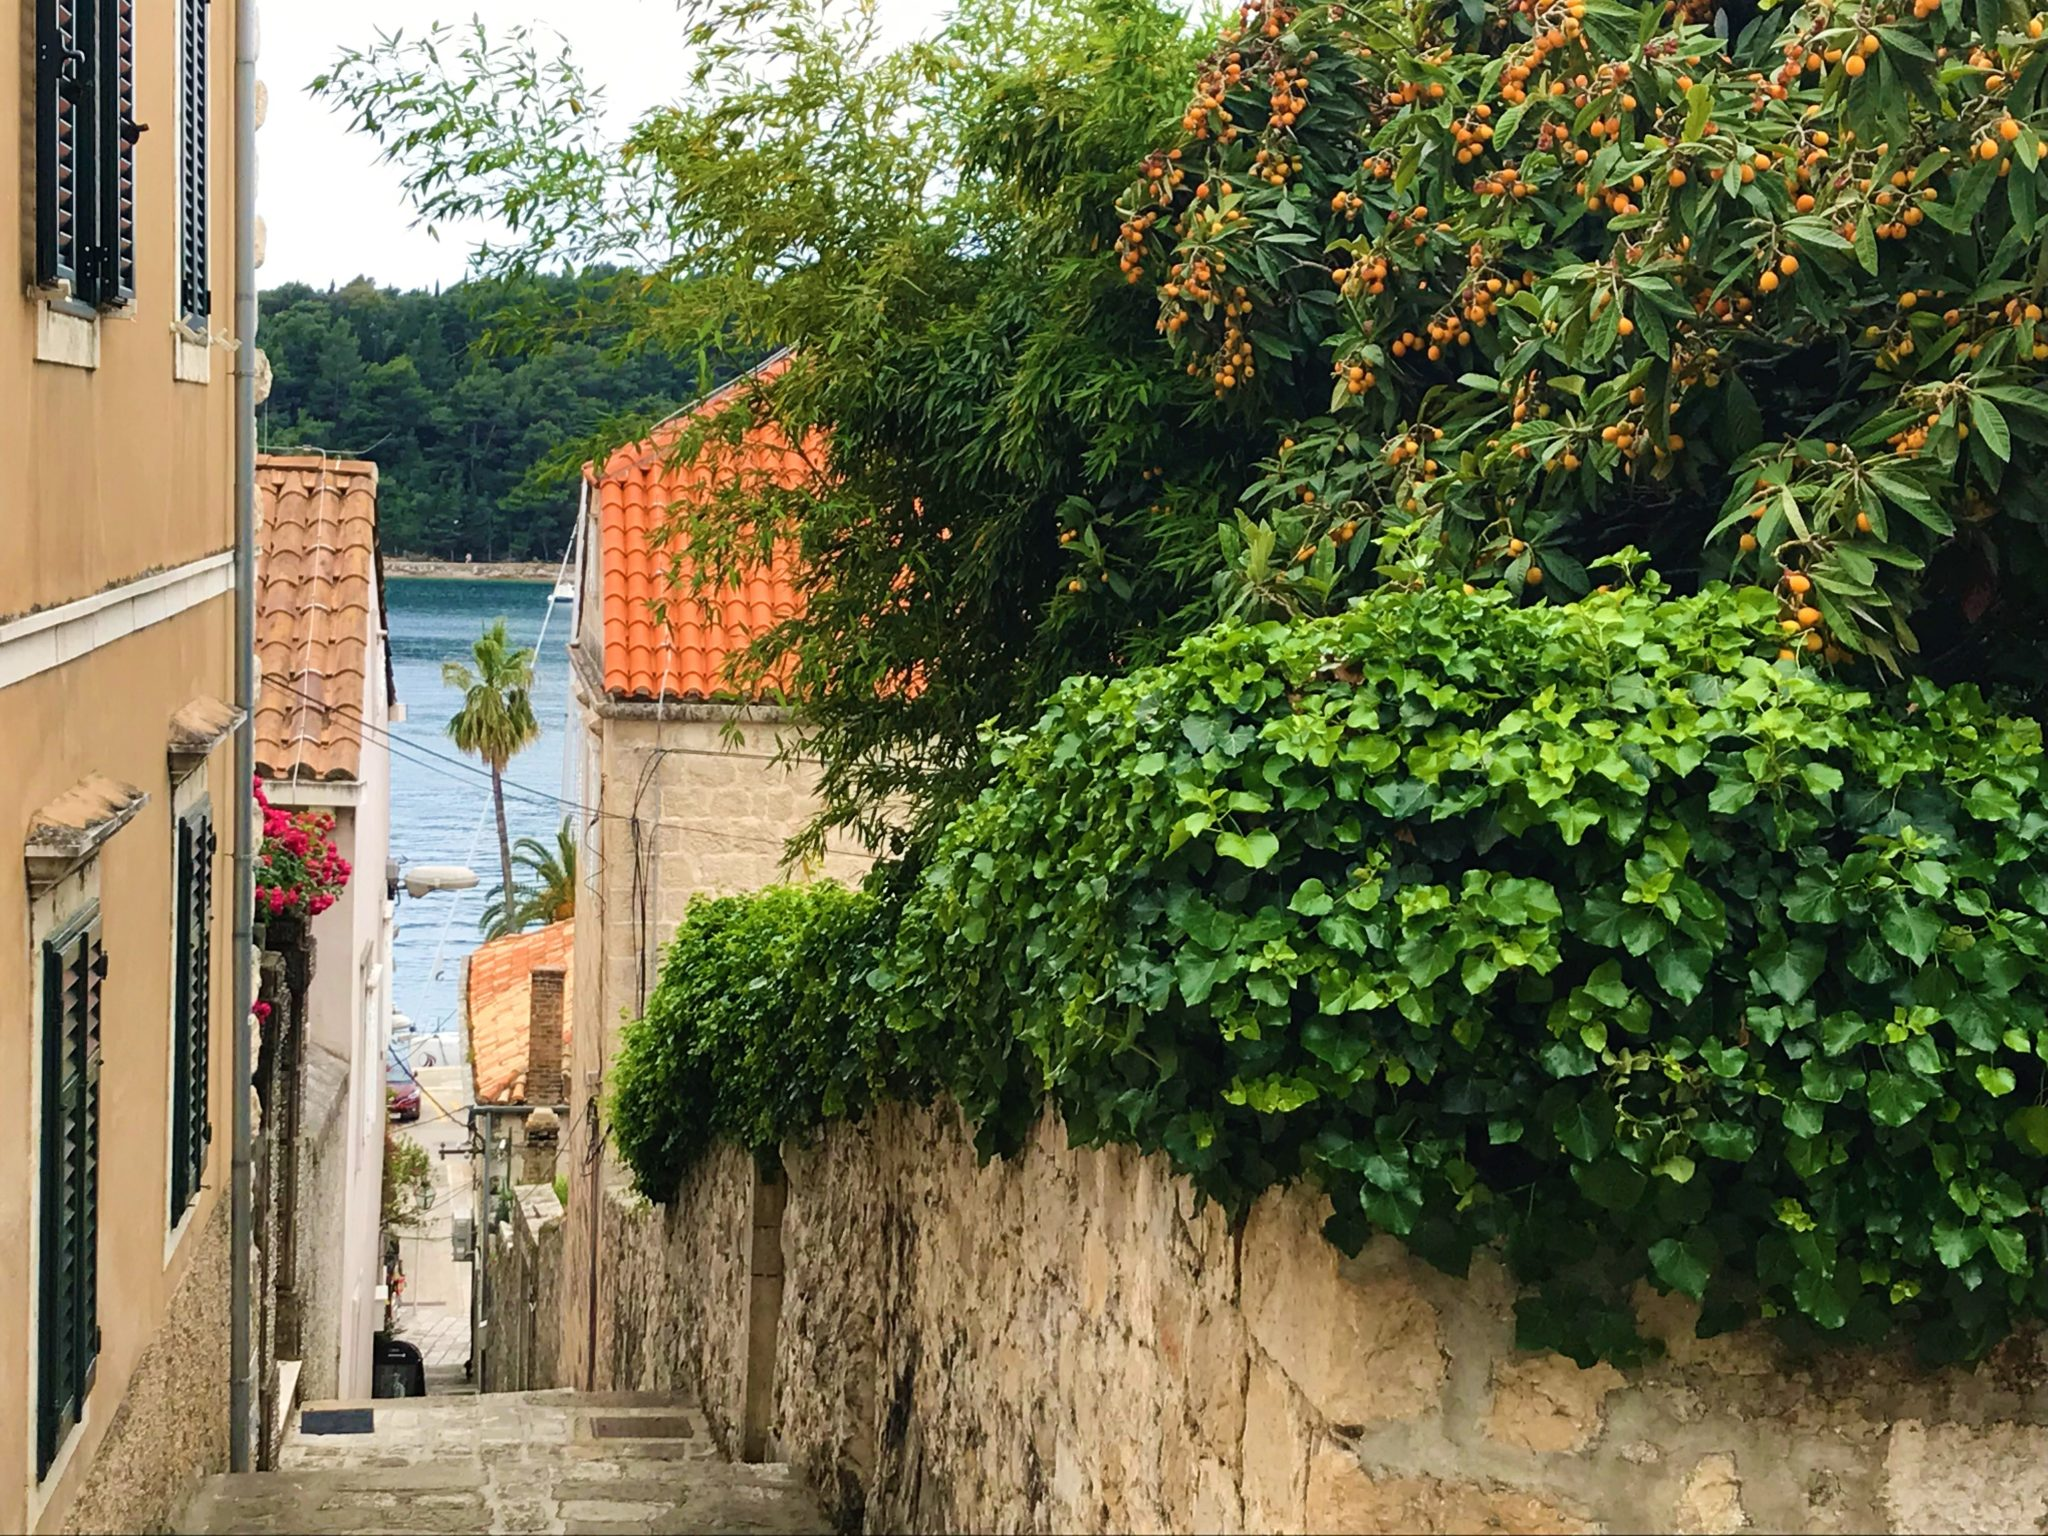 Day Trip to Cavtat: Everything You Need to Know